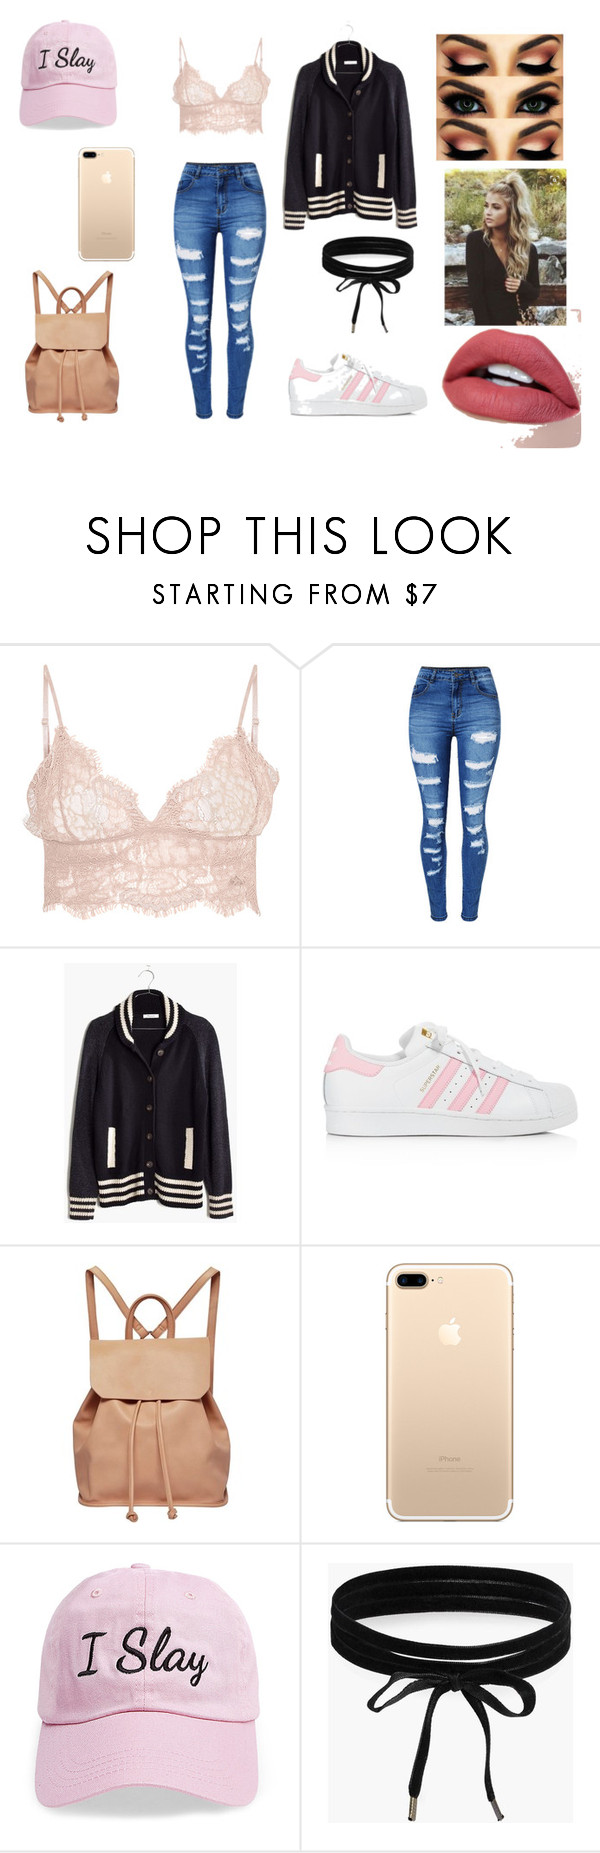 """""""I slay"""" by secret-marie ❤ liked on Polyvore featuring WithChic, Madewell, adidas, Urban Originals, Steve Madden and Boohoo"""